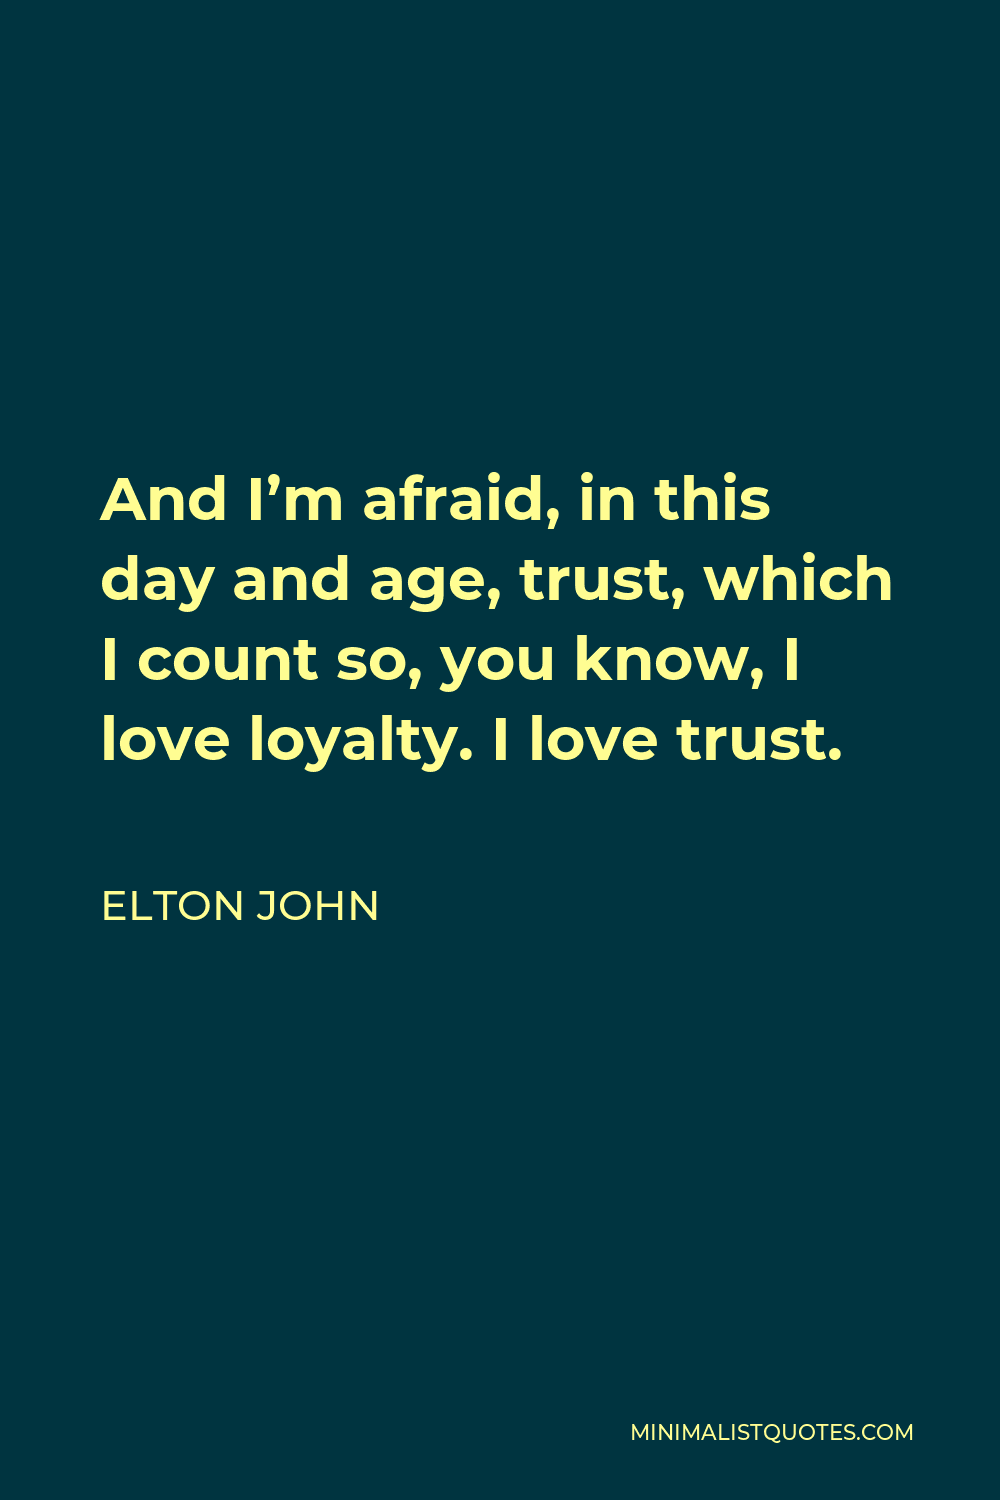 Elton John Quote - And I'm afraid, in this day and age, trust, which I count so, you know, I love loyalty. I love trust.